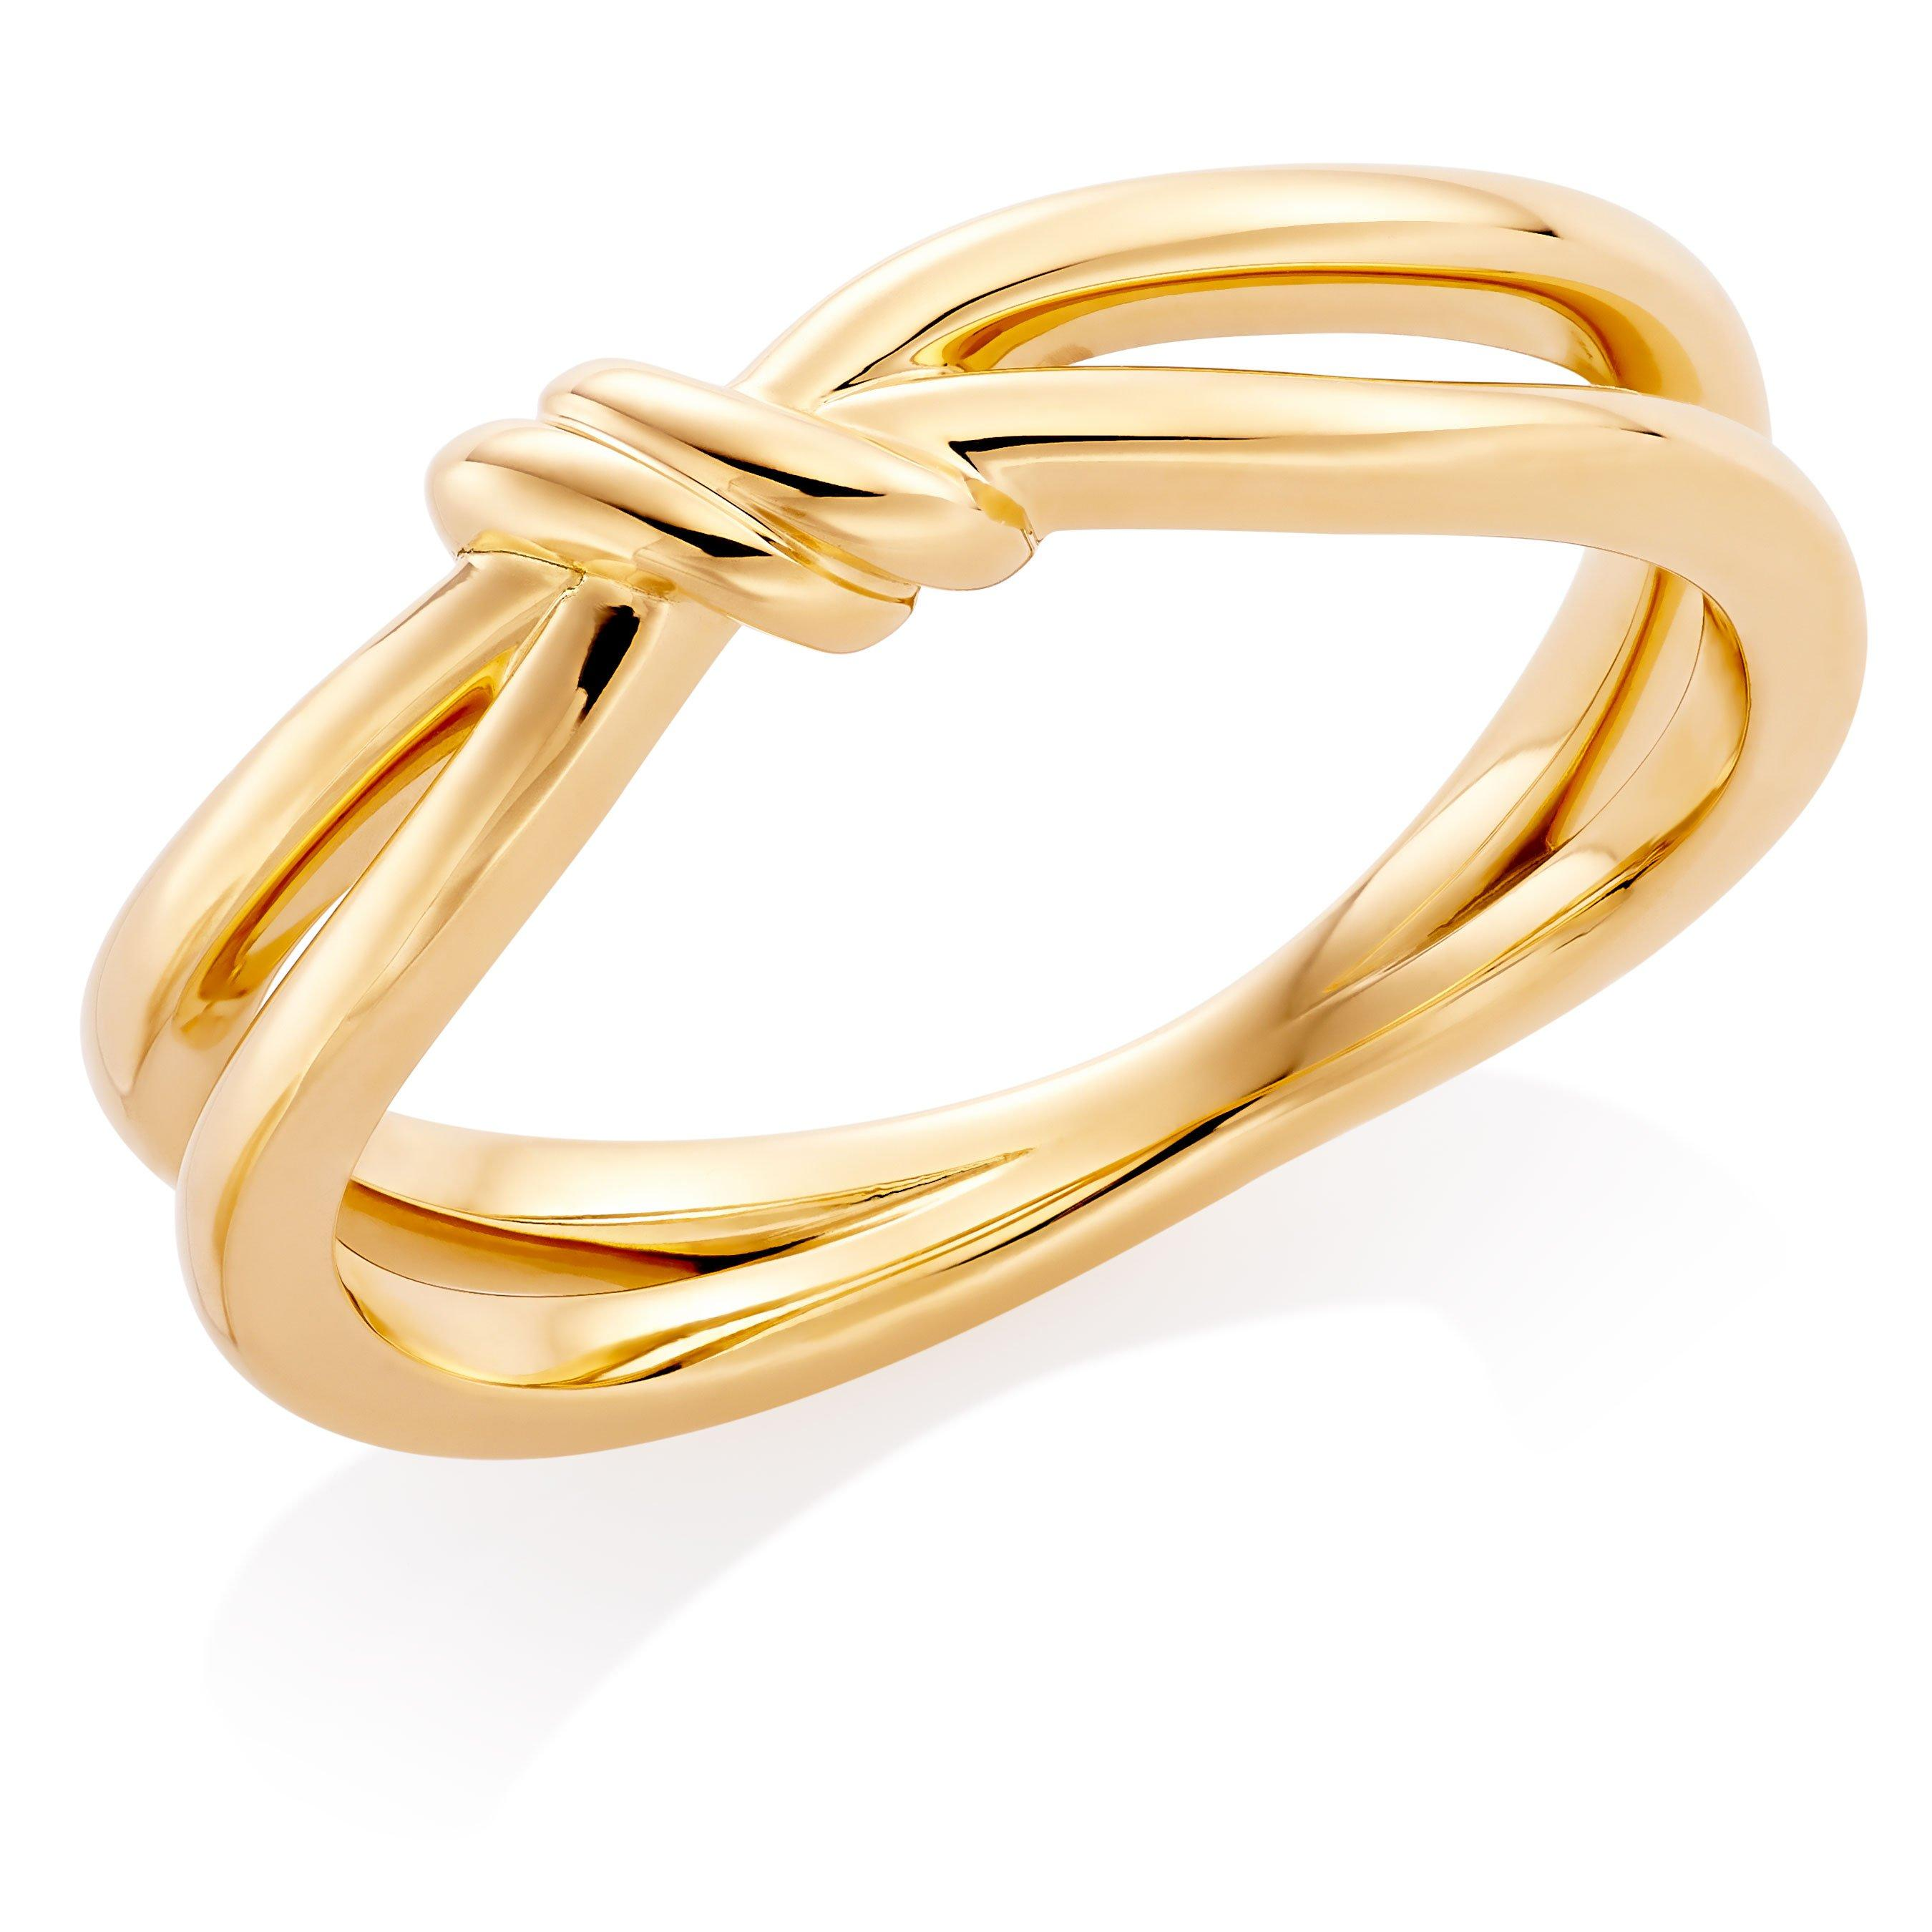 Hearts On Fire Hayley Paige Love Code 18ct Gold Ring